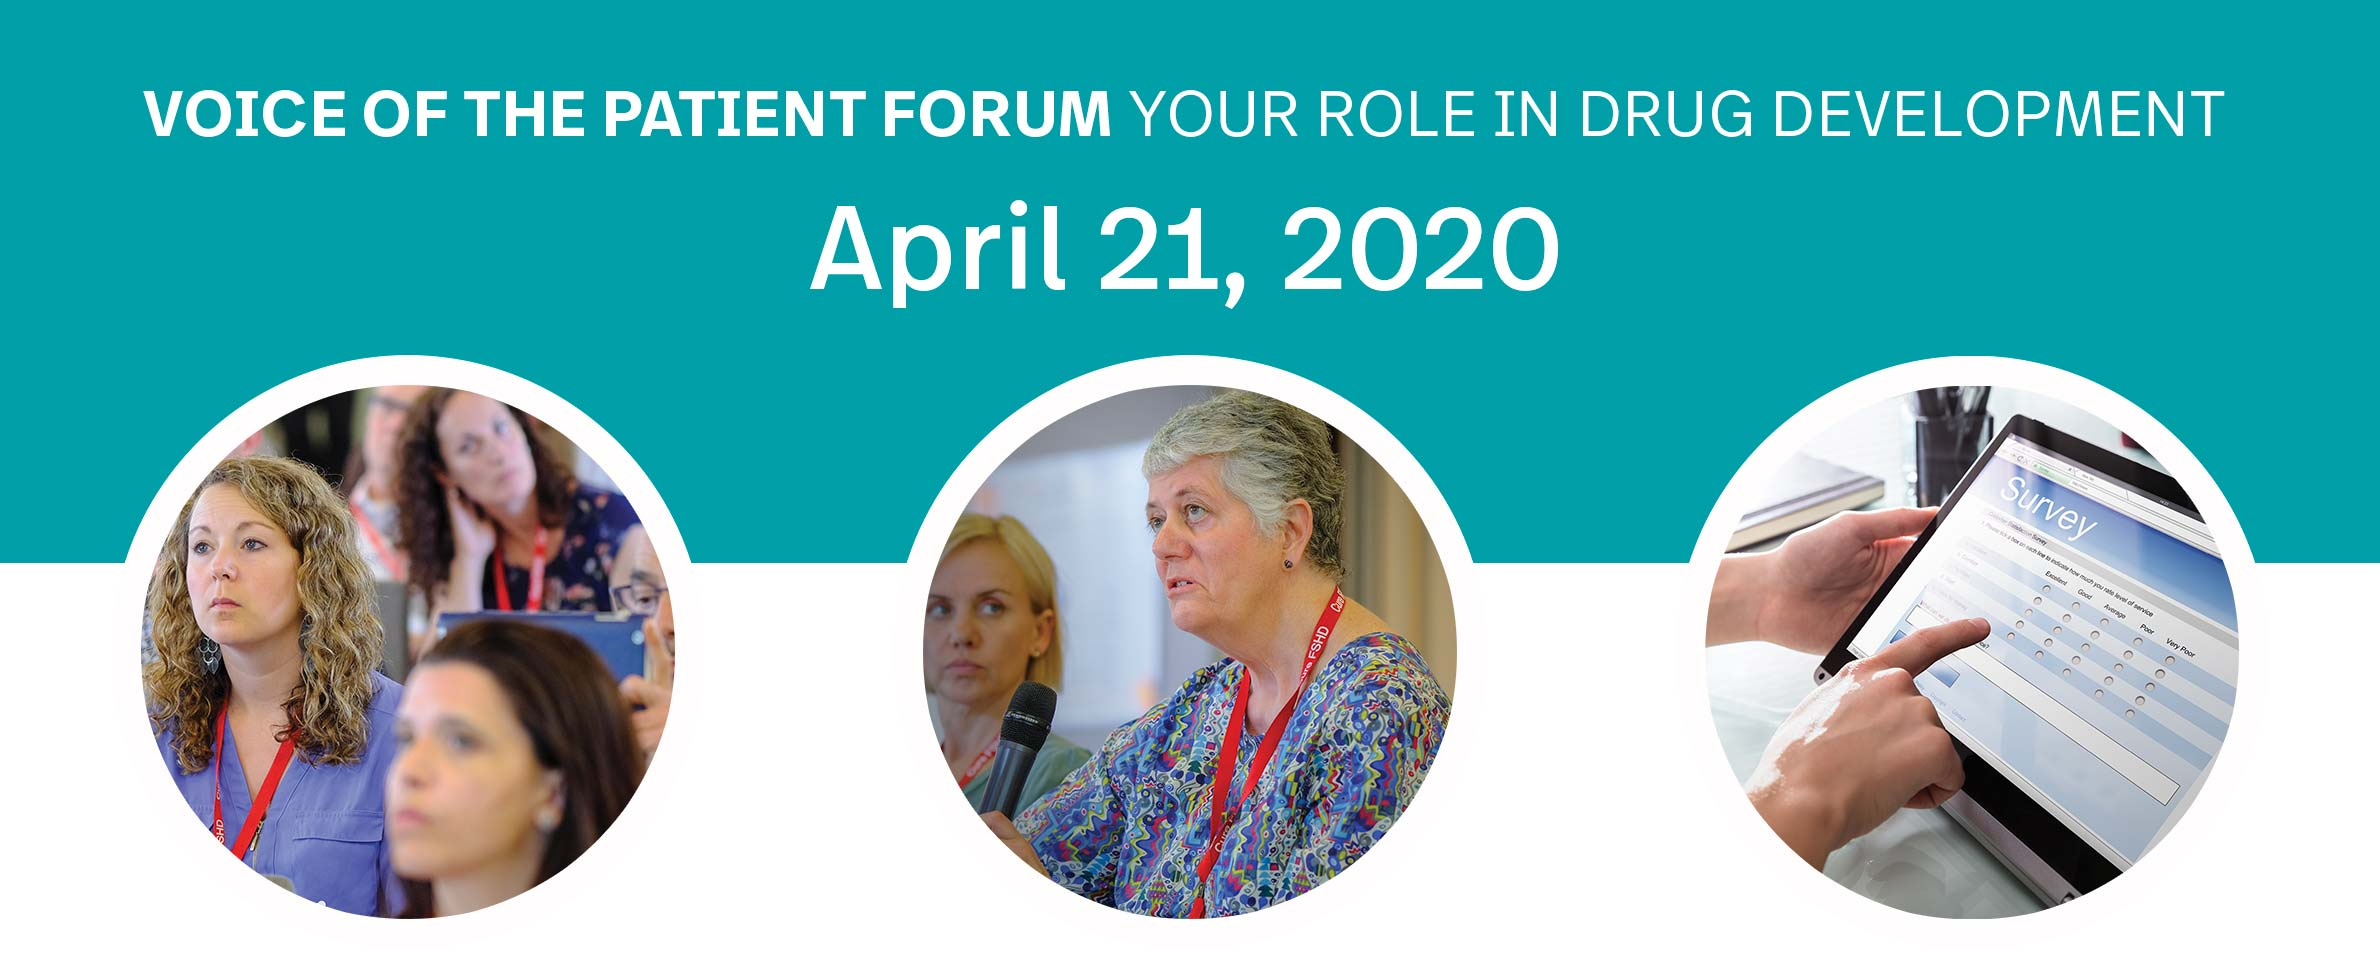 Voice of the Patient Forum Your Role in Drug Development - April 21, 2020